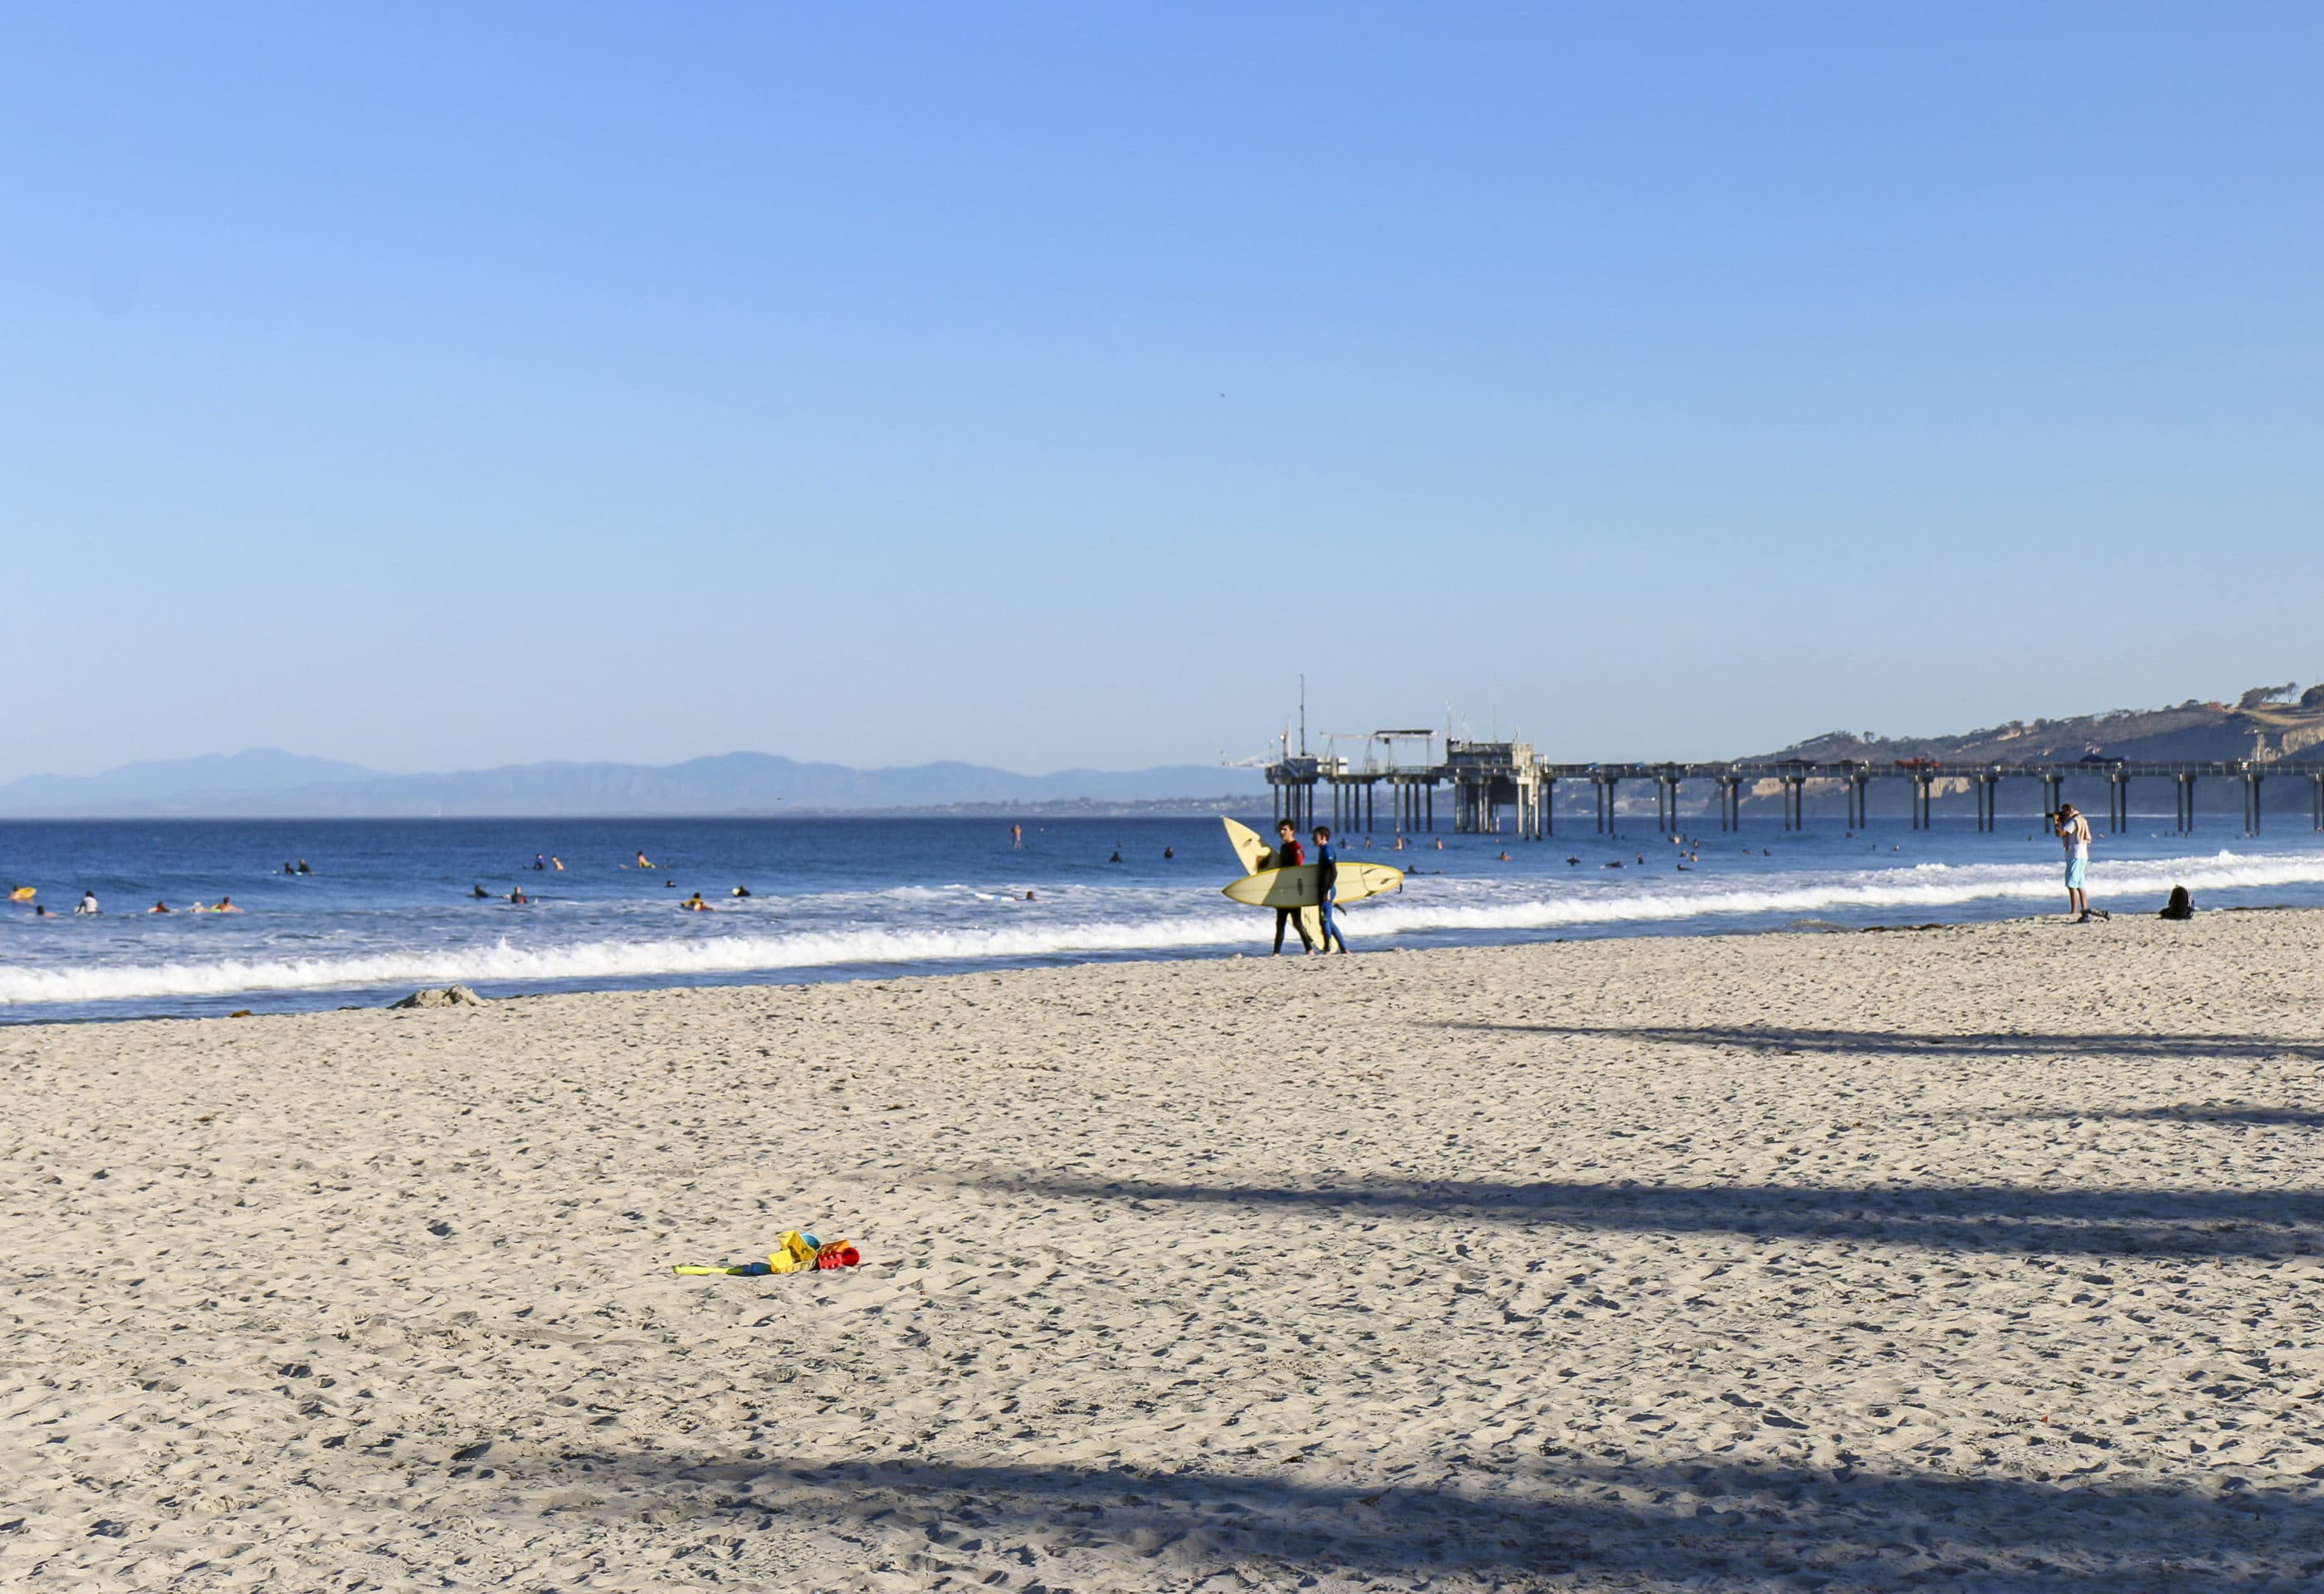 Two surfers walk on the sand on an October morning at La Jolla Shores Beach.